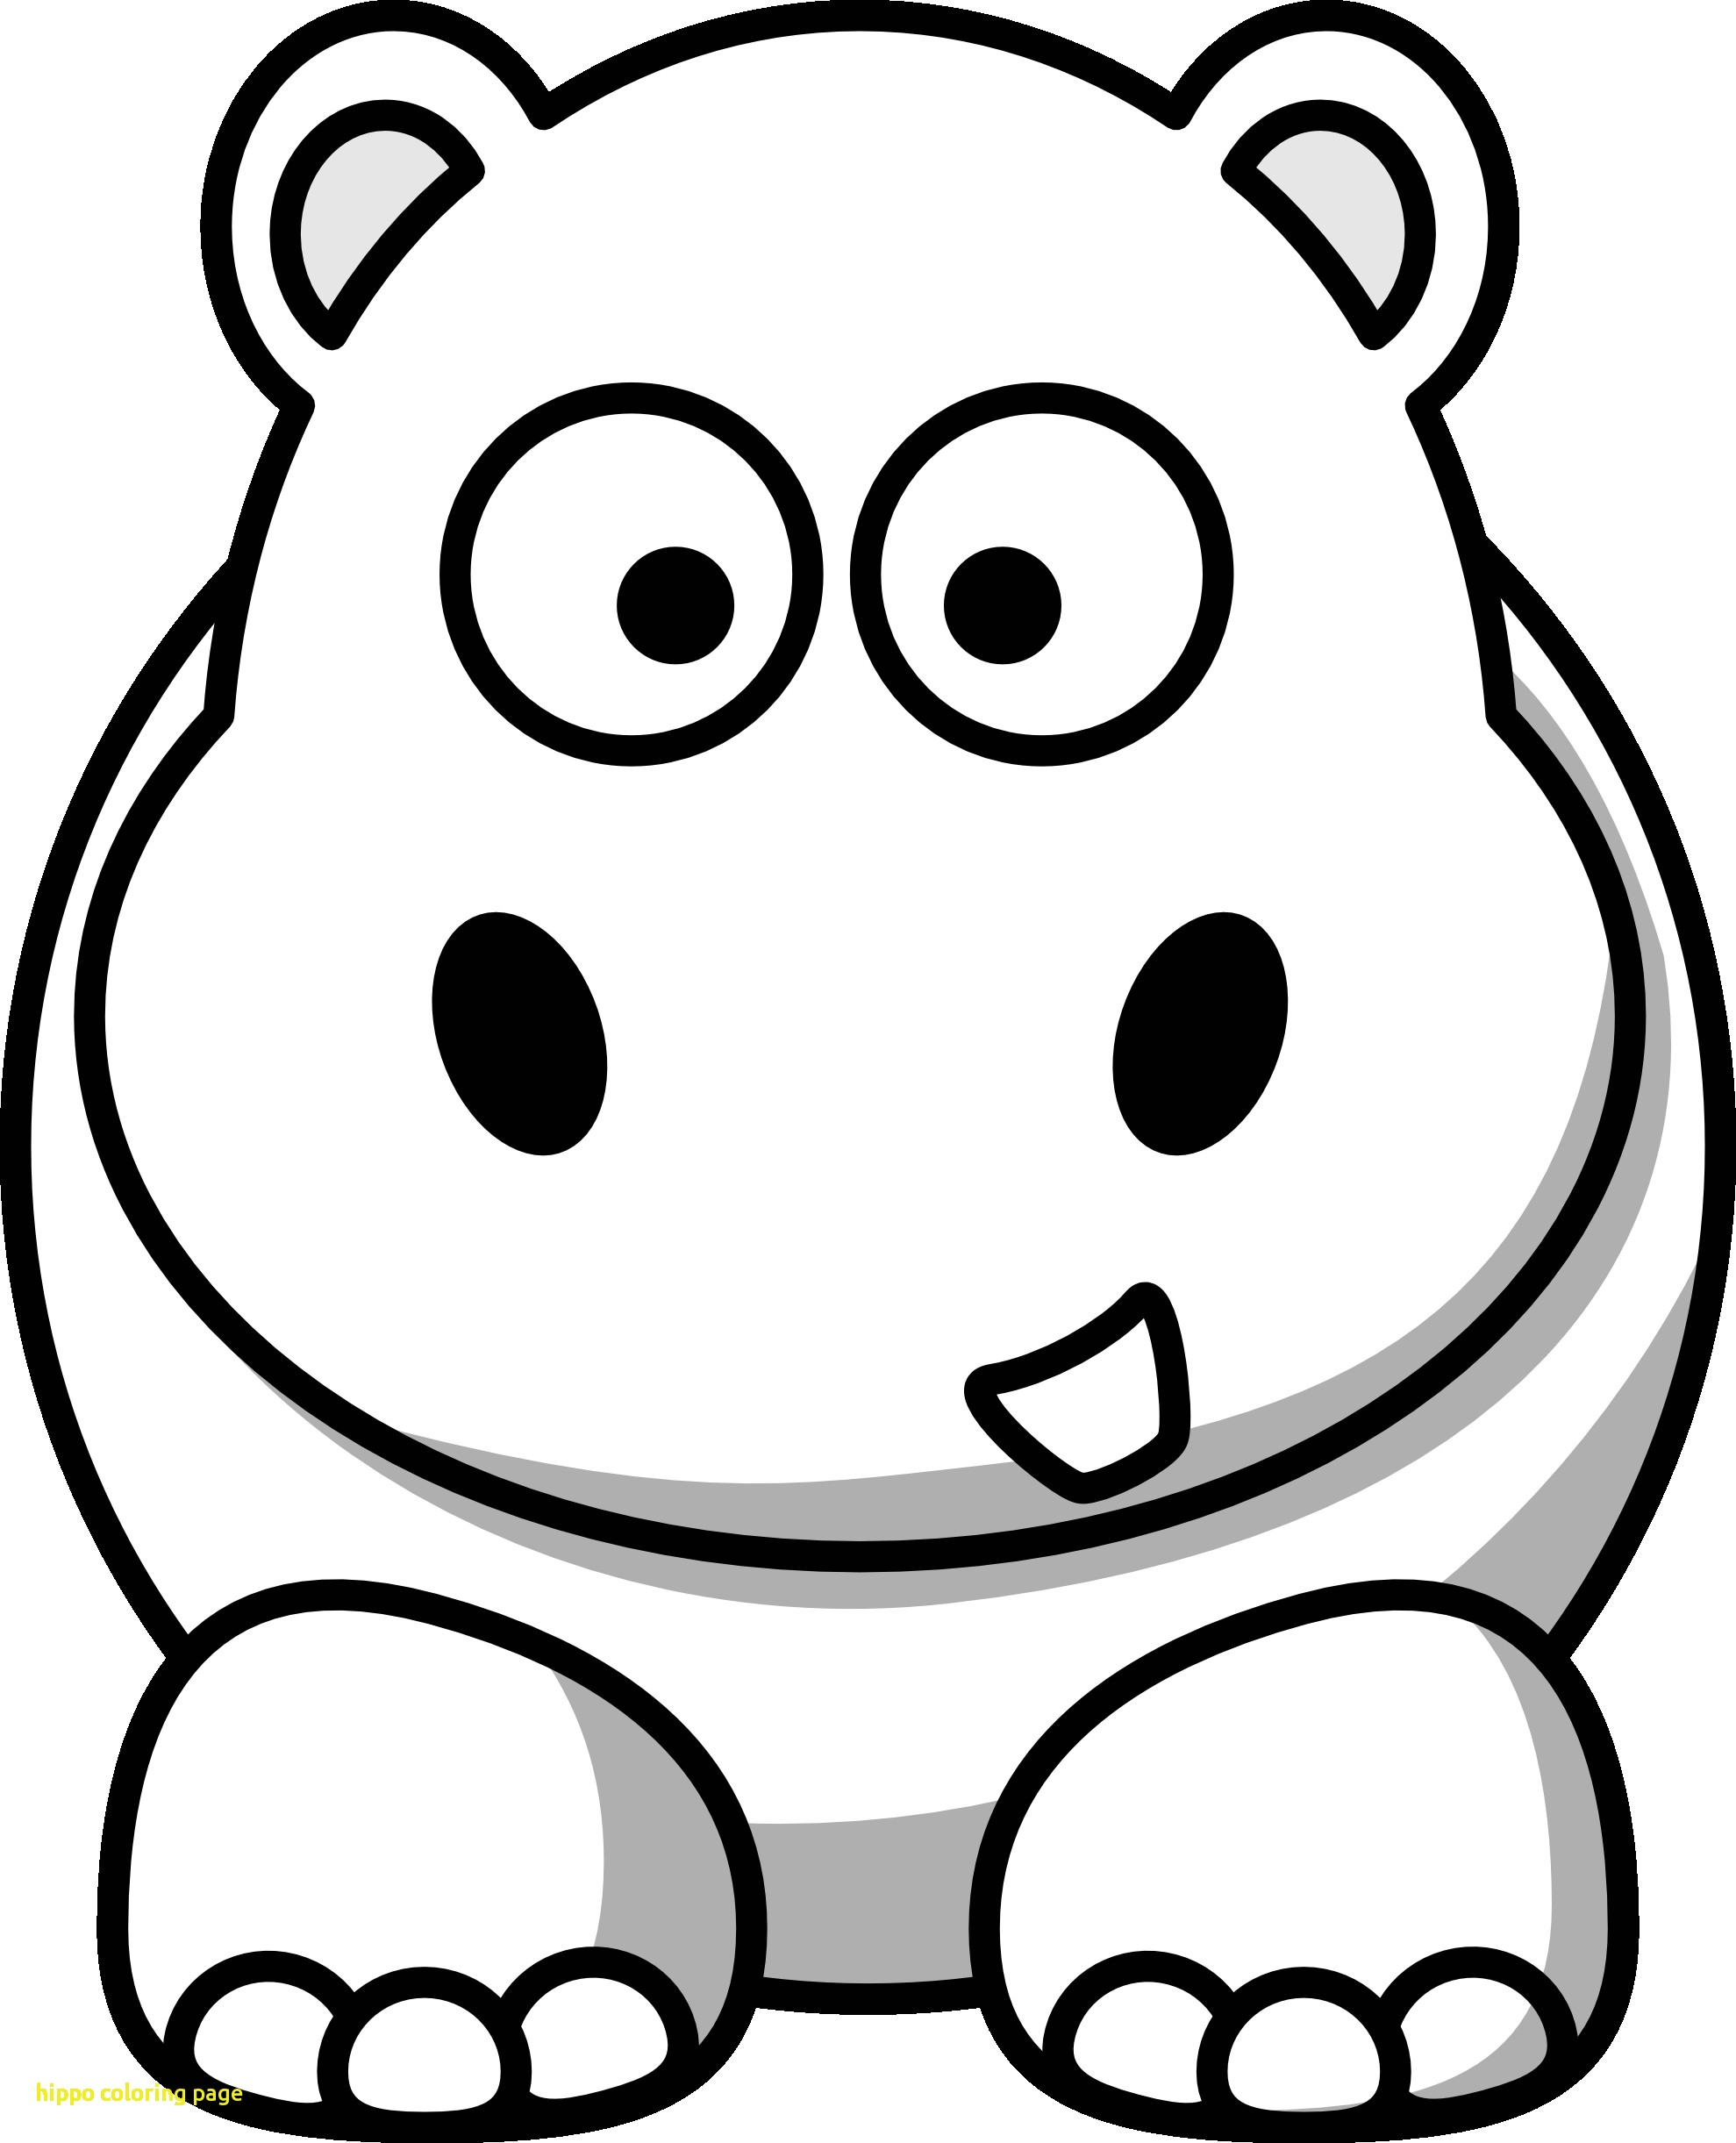 coloring pages hippo free printable hippo coloring pages for kids coloring hippo pages